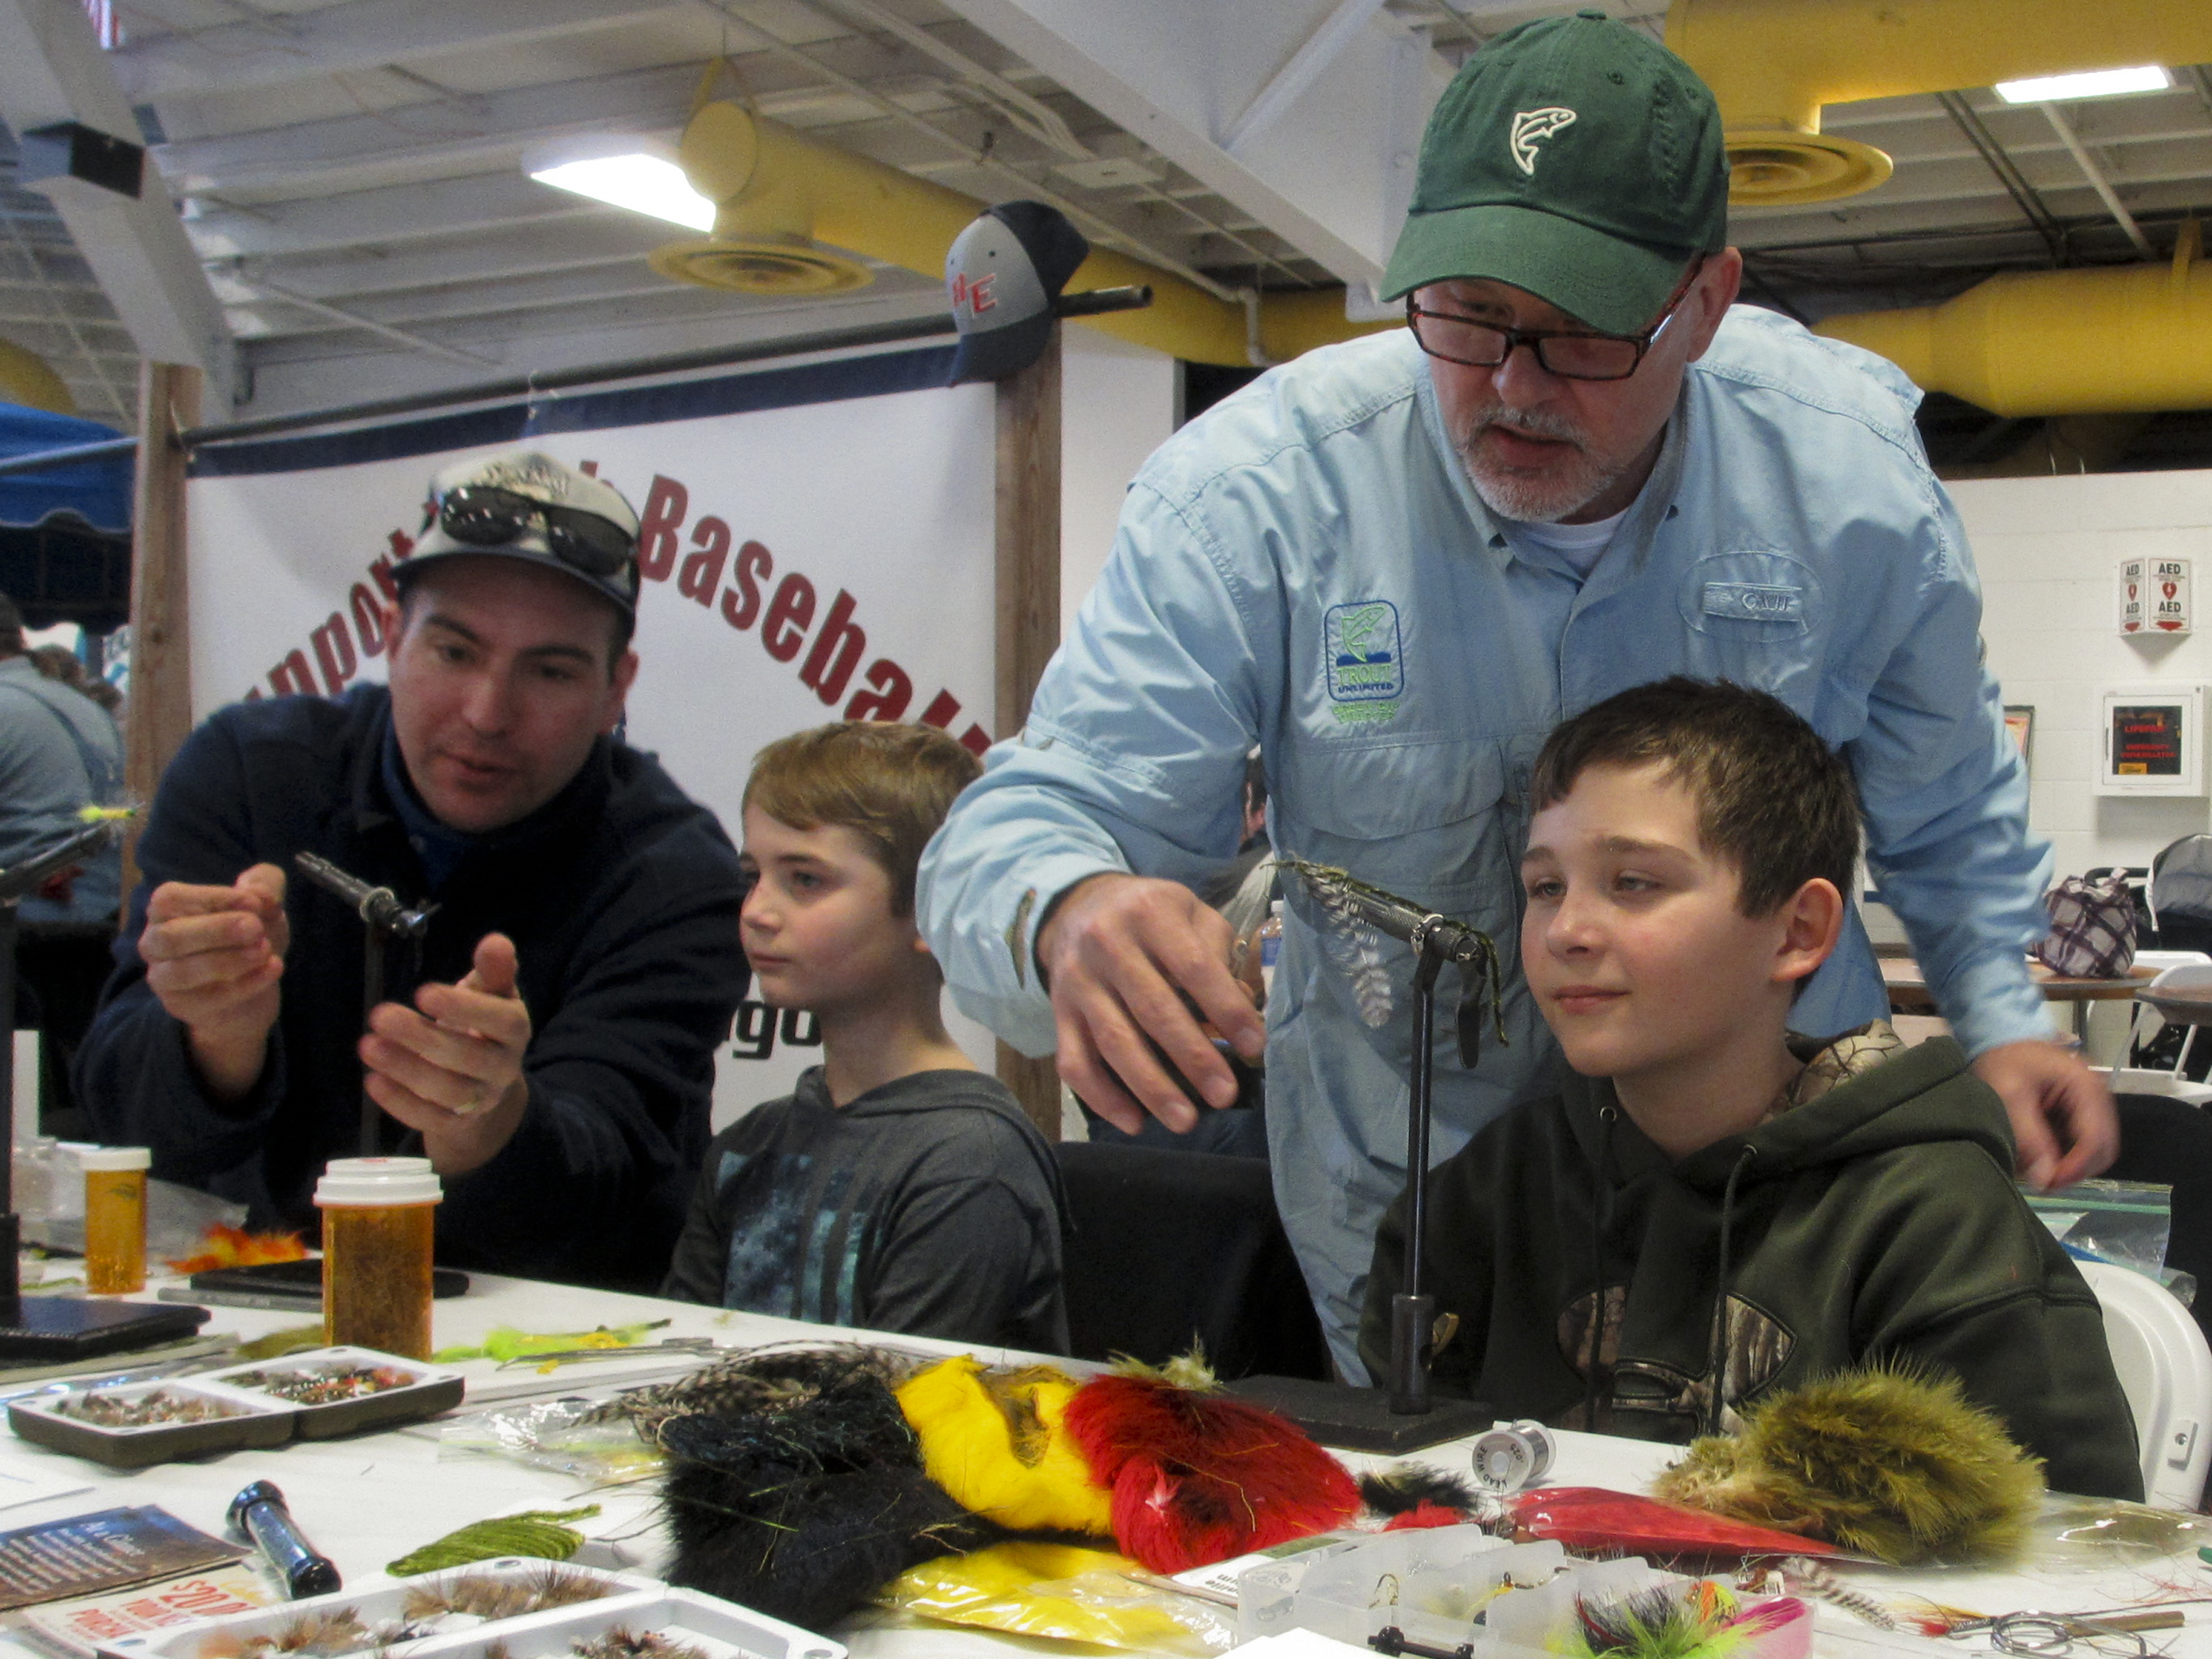 Adrian Meseberg and Mike Renish tying flies with youth at Sunnyview Expo Center outside Oshkosh